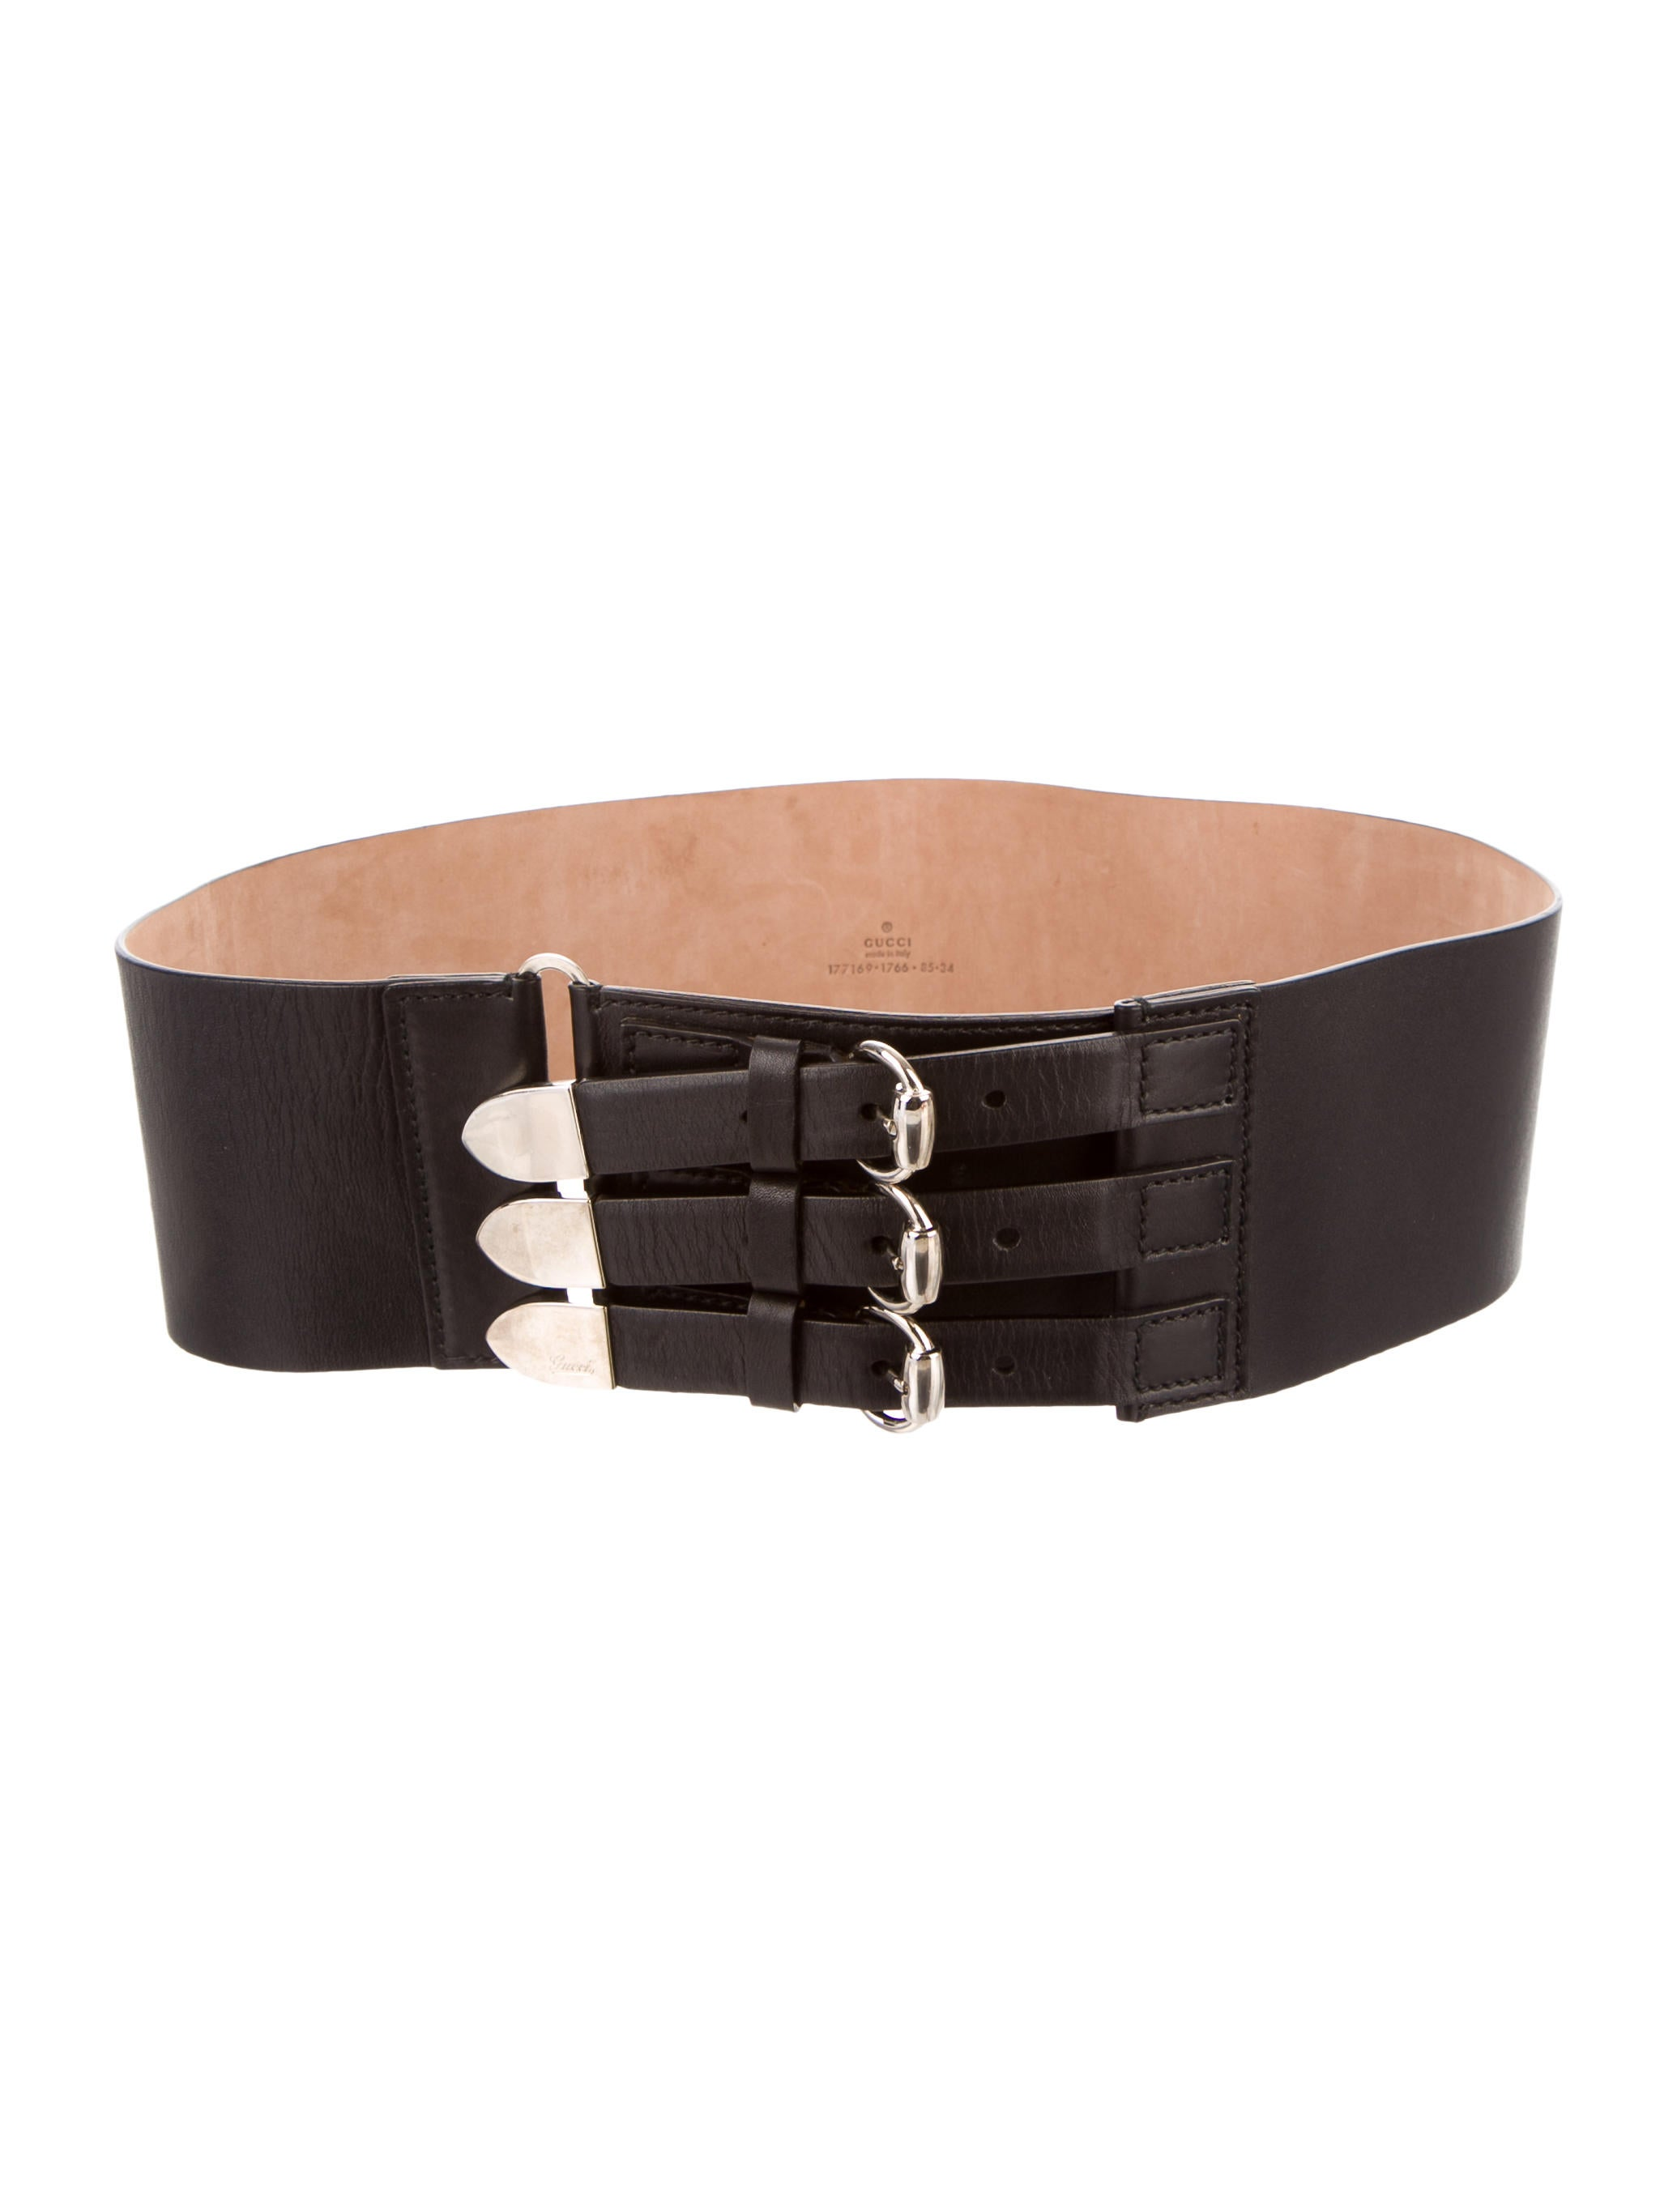 Discover the range of women's belts available from ASOS. From leather and waist belts, to obi and elastic belts.